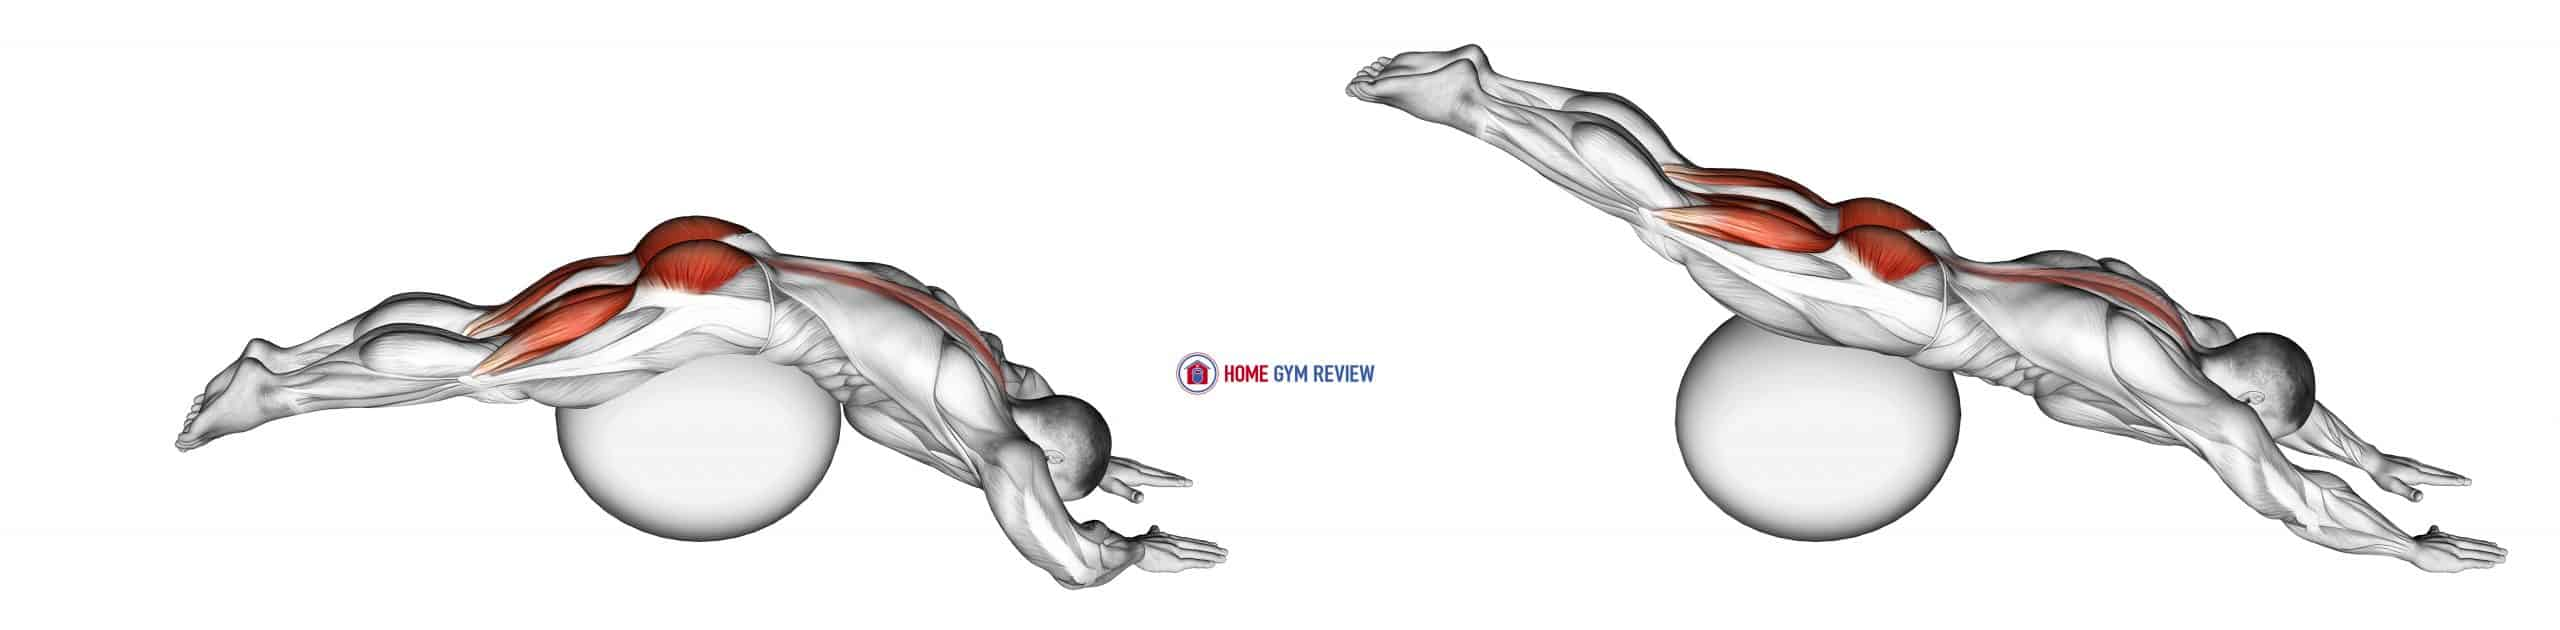 Reverse Hyper extension (on stability ball)